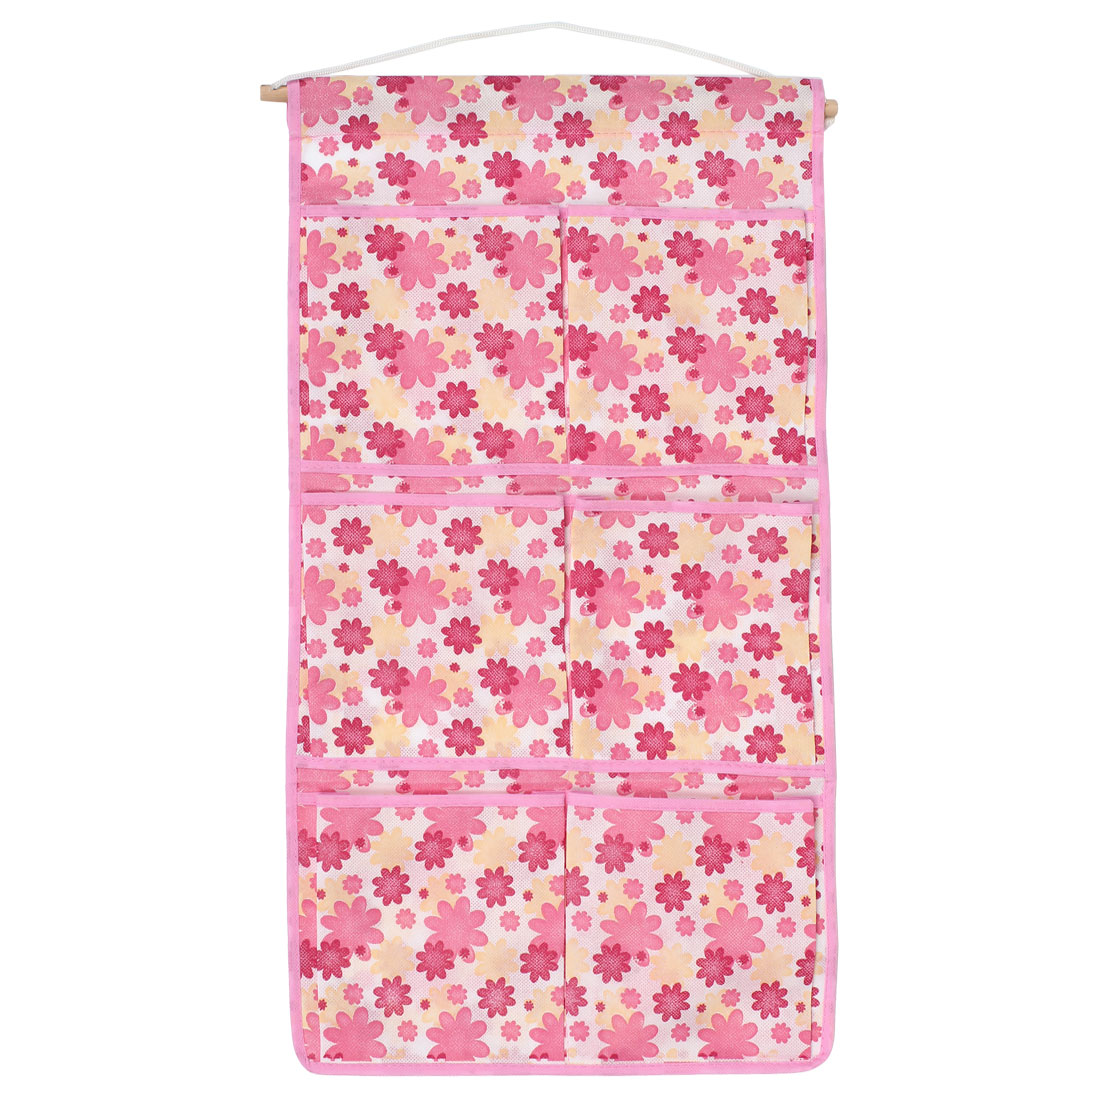 "Home 6 Compartments Flower Print Pink White Organizer Pocket Bag 23"" Length"